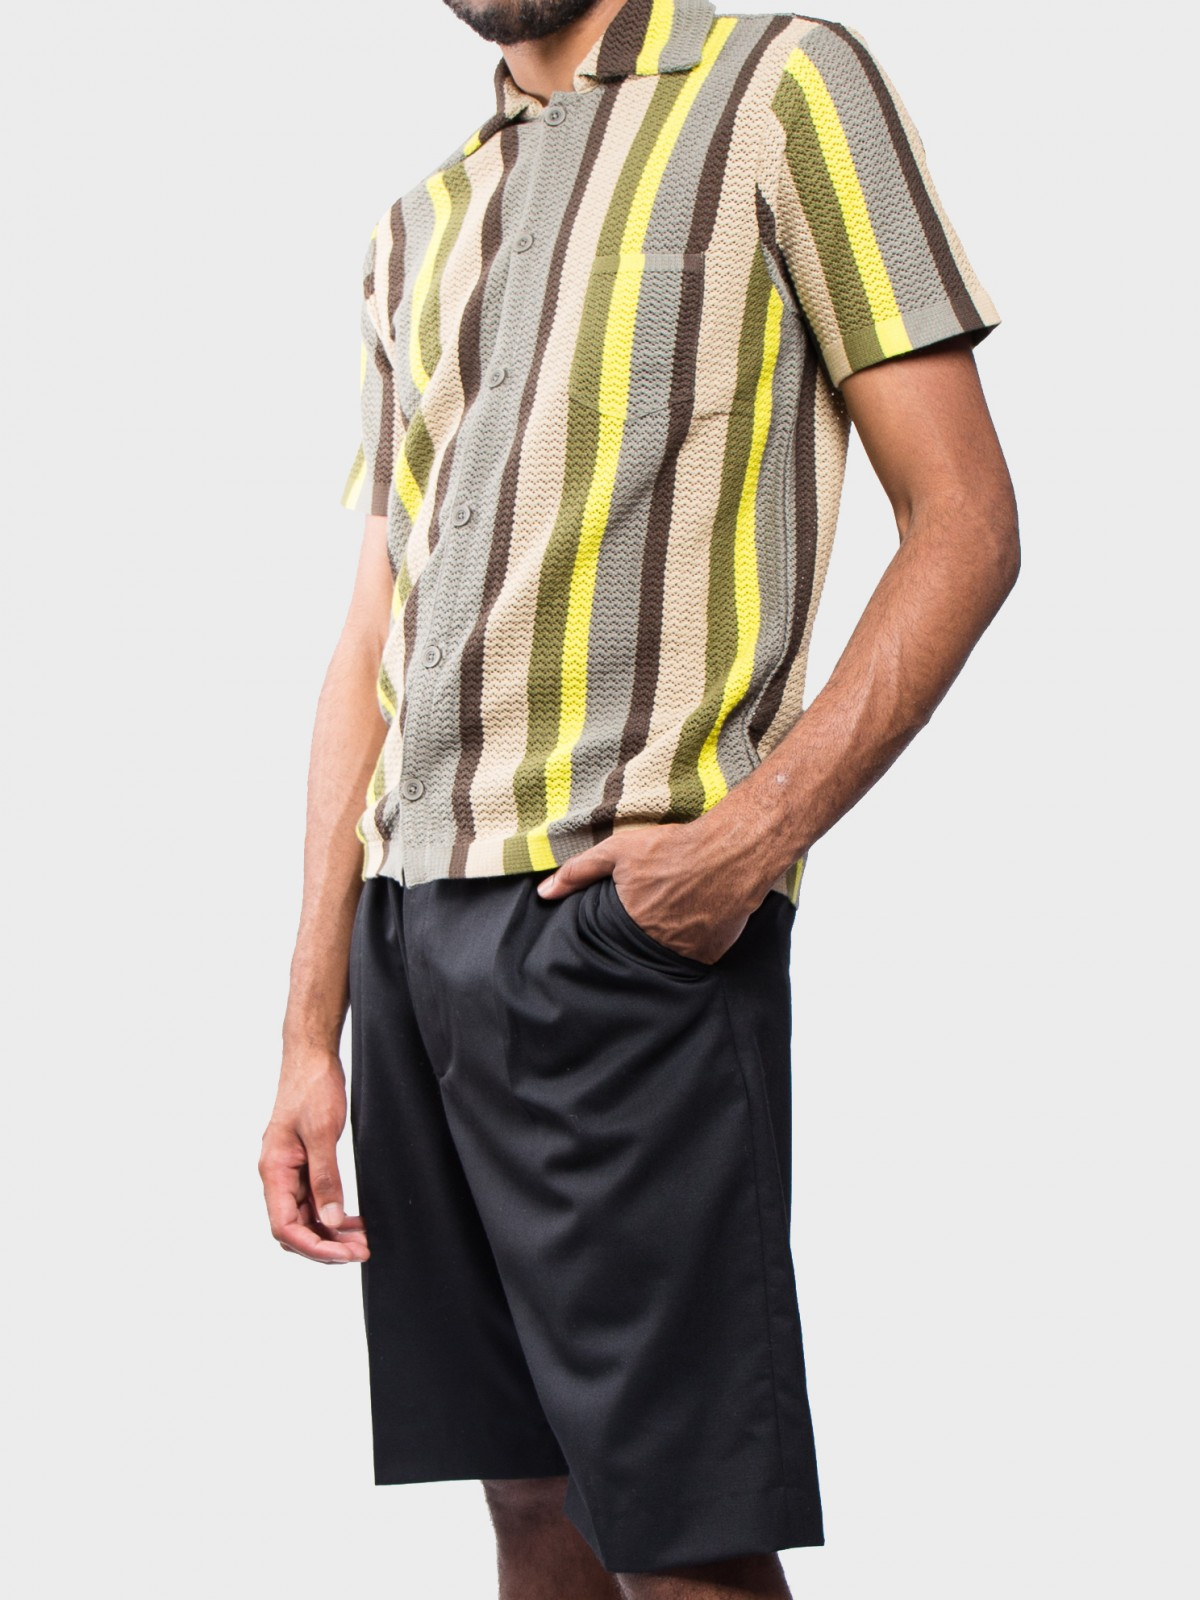 CMMN SWDN Wes Knitted Shirt in Multistripe